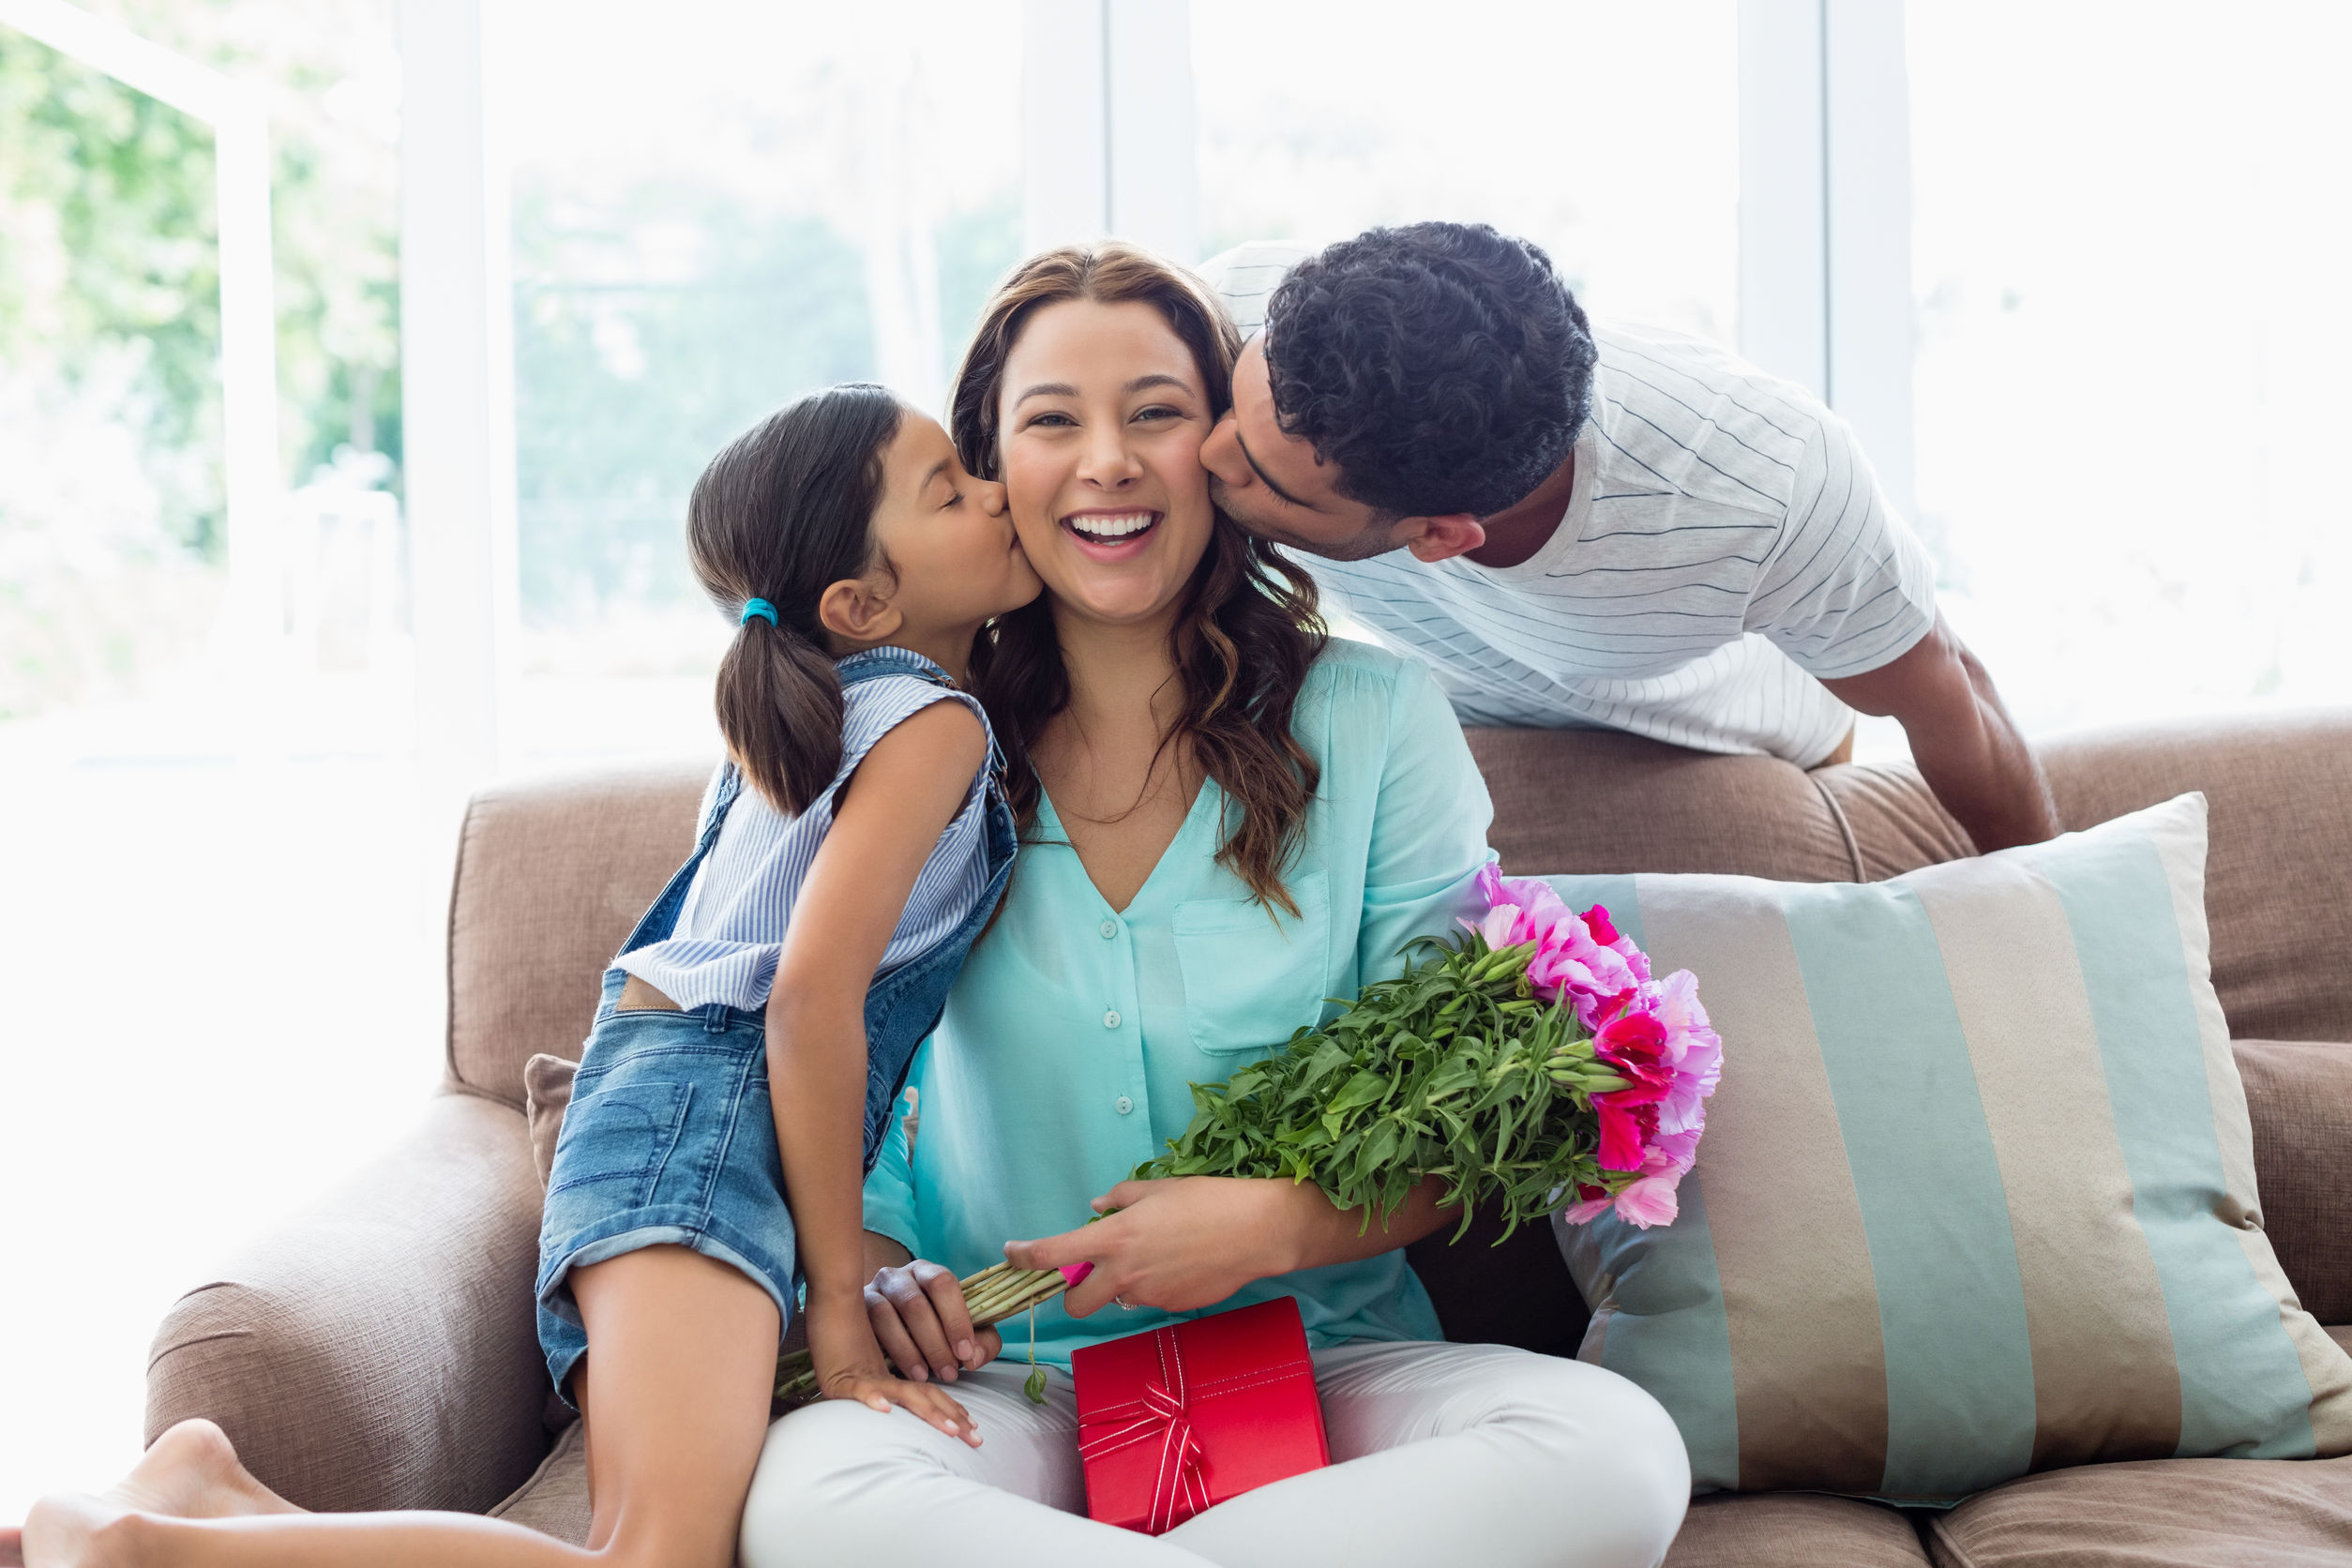 Mother receiving flowers, gift and a kiss for Valentine's Day